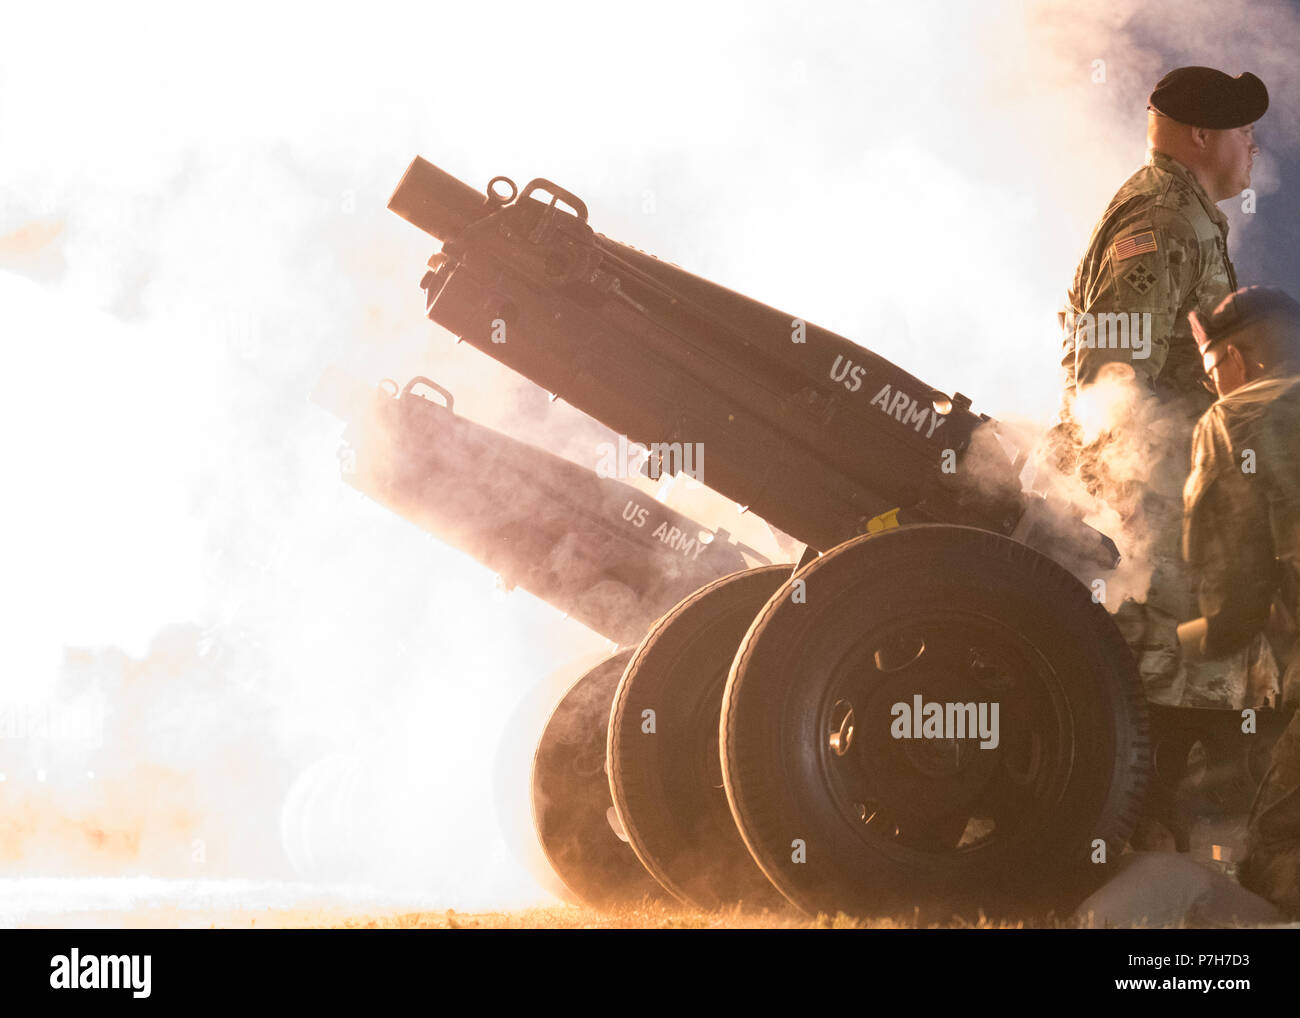 1812 Overture Stock Photos & 1812 Overture Stock Images - Alamy